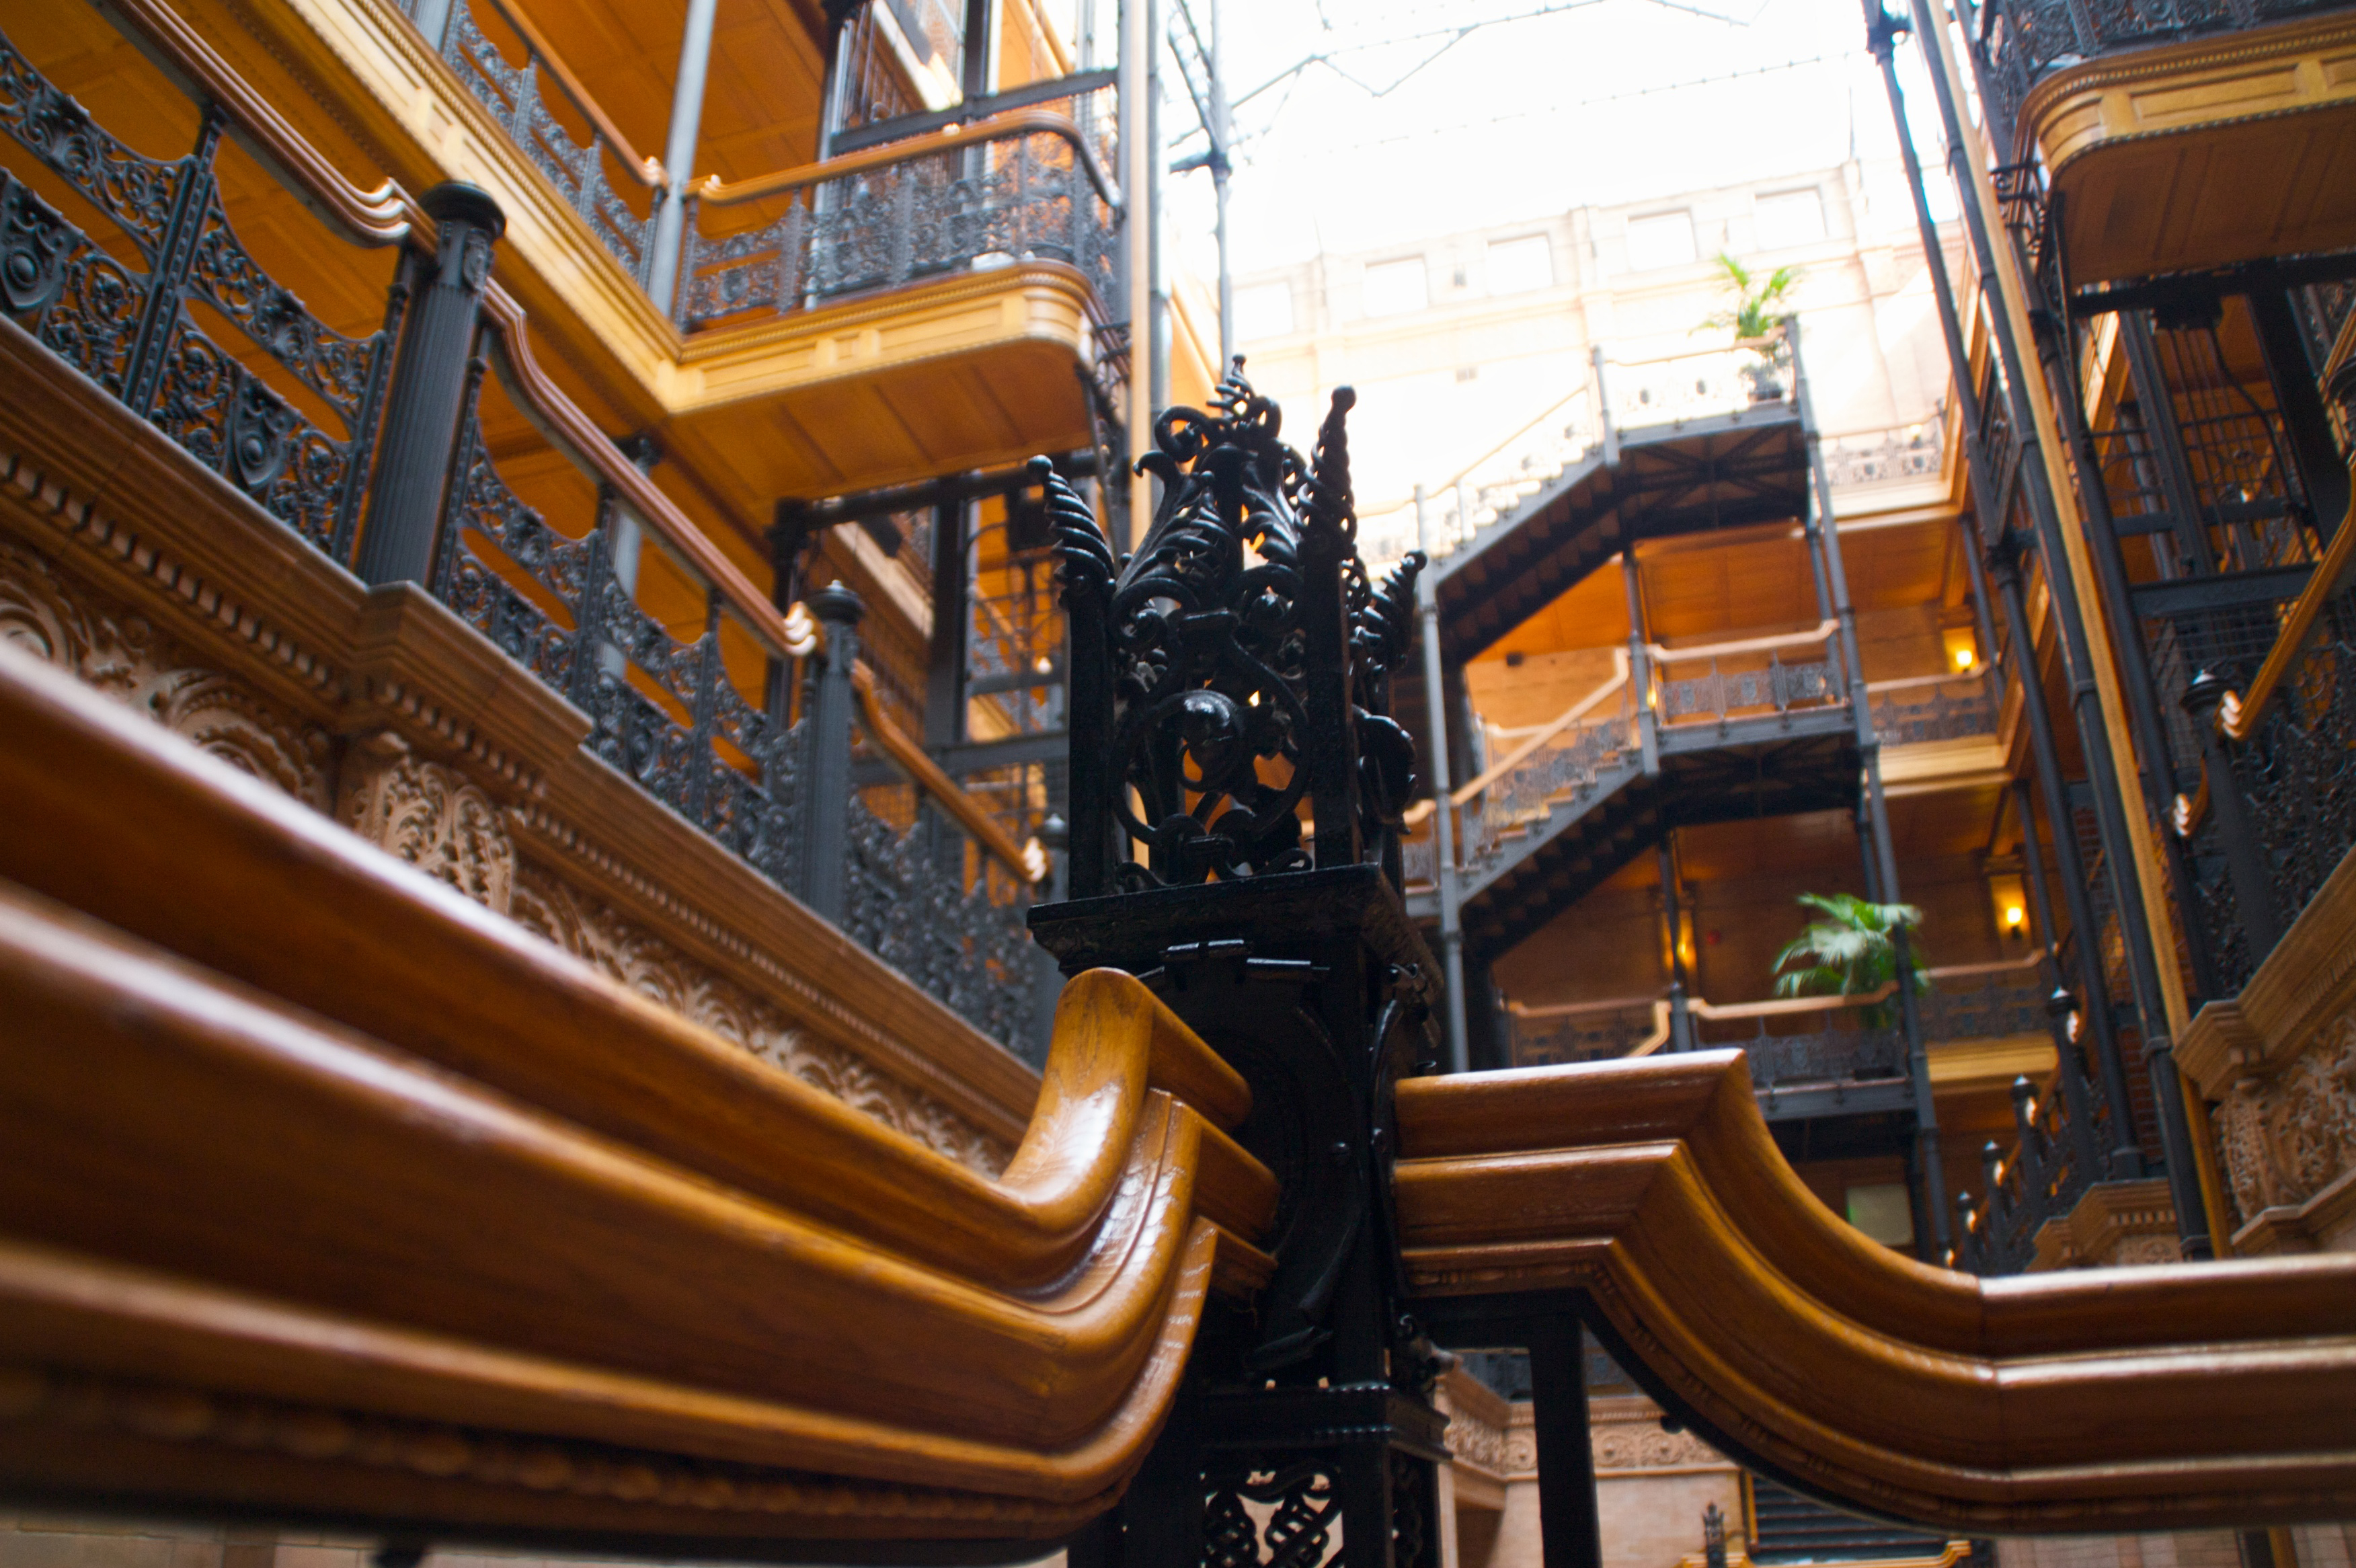 Bradbury Building - One of the Best Cultural Centres in